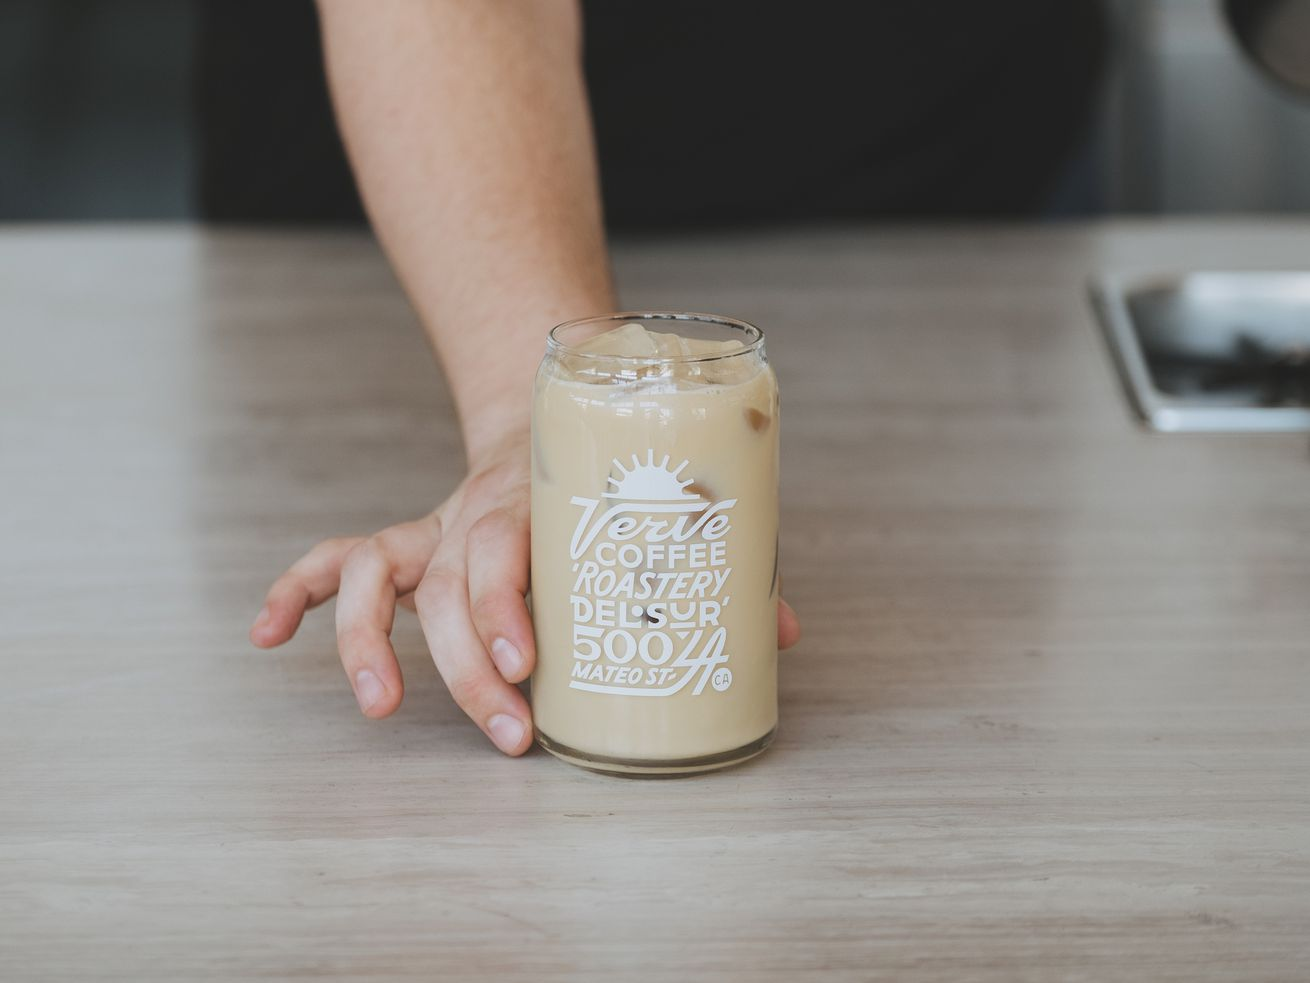 A latte in a tall glass, being slid across a table.